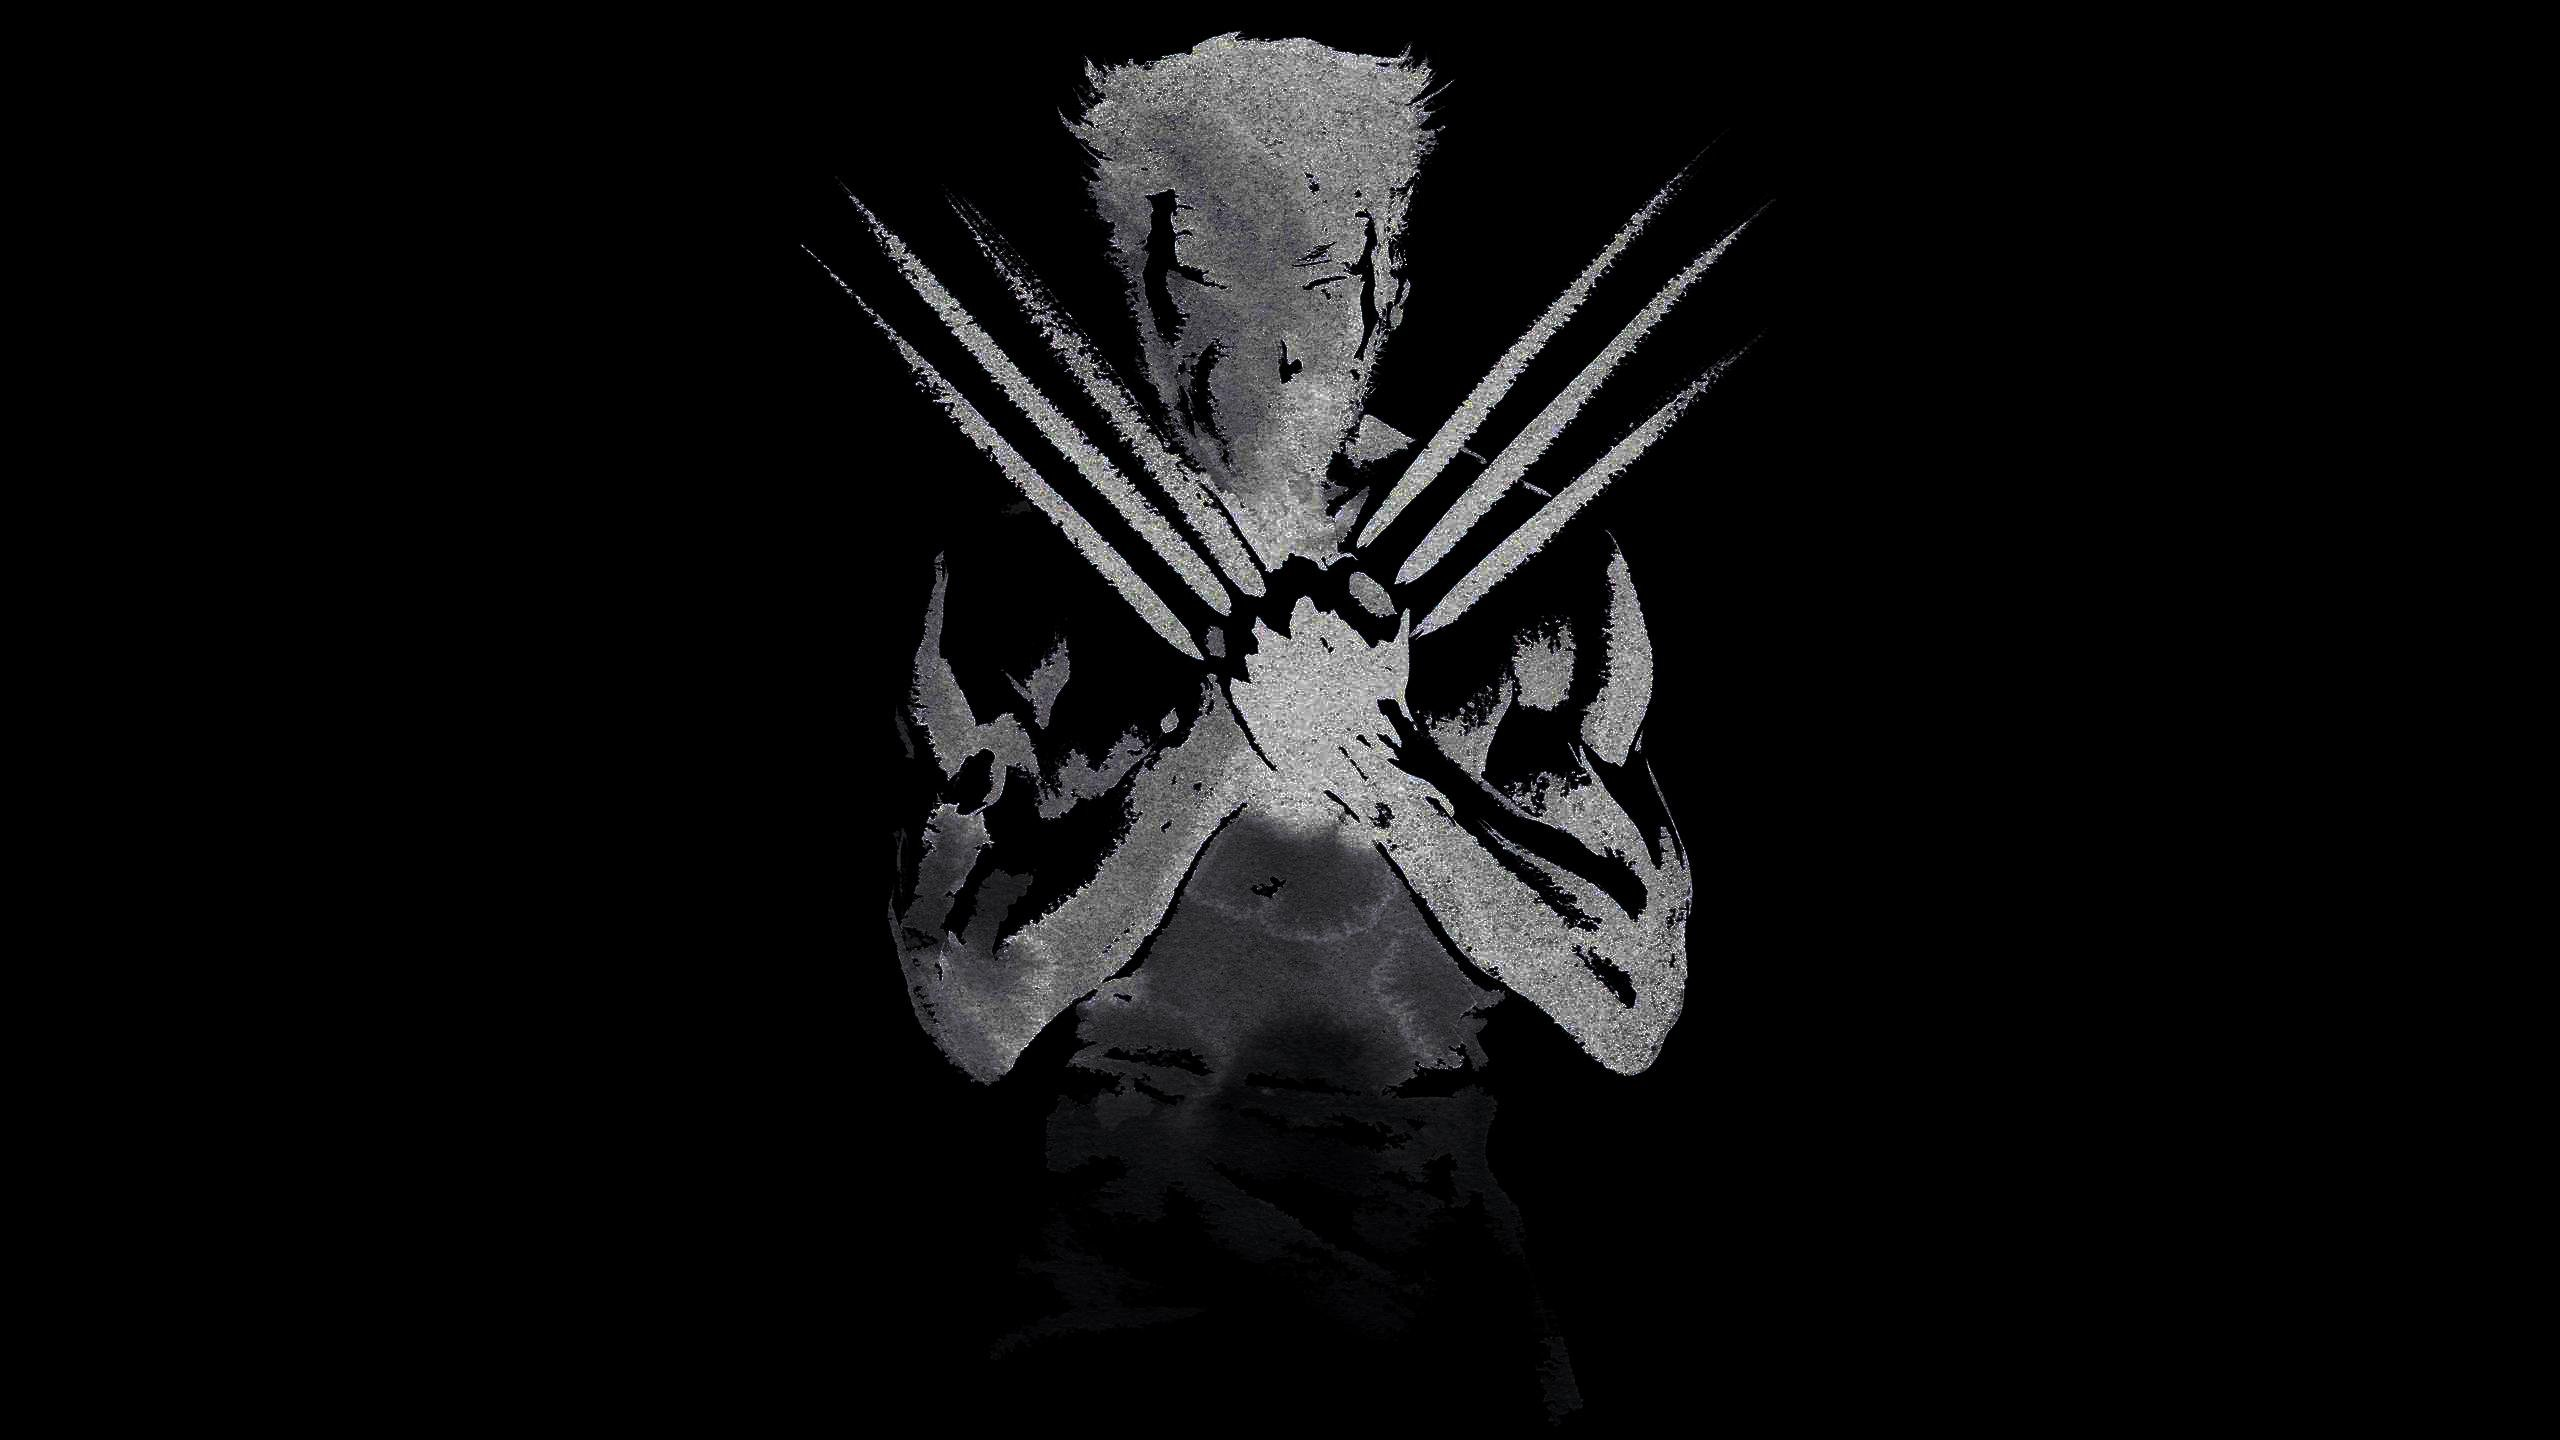 wolverine wallpapers photos and desktop backgrounds up to 8K